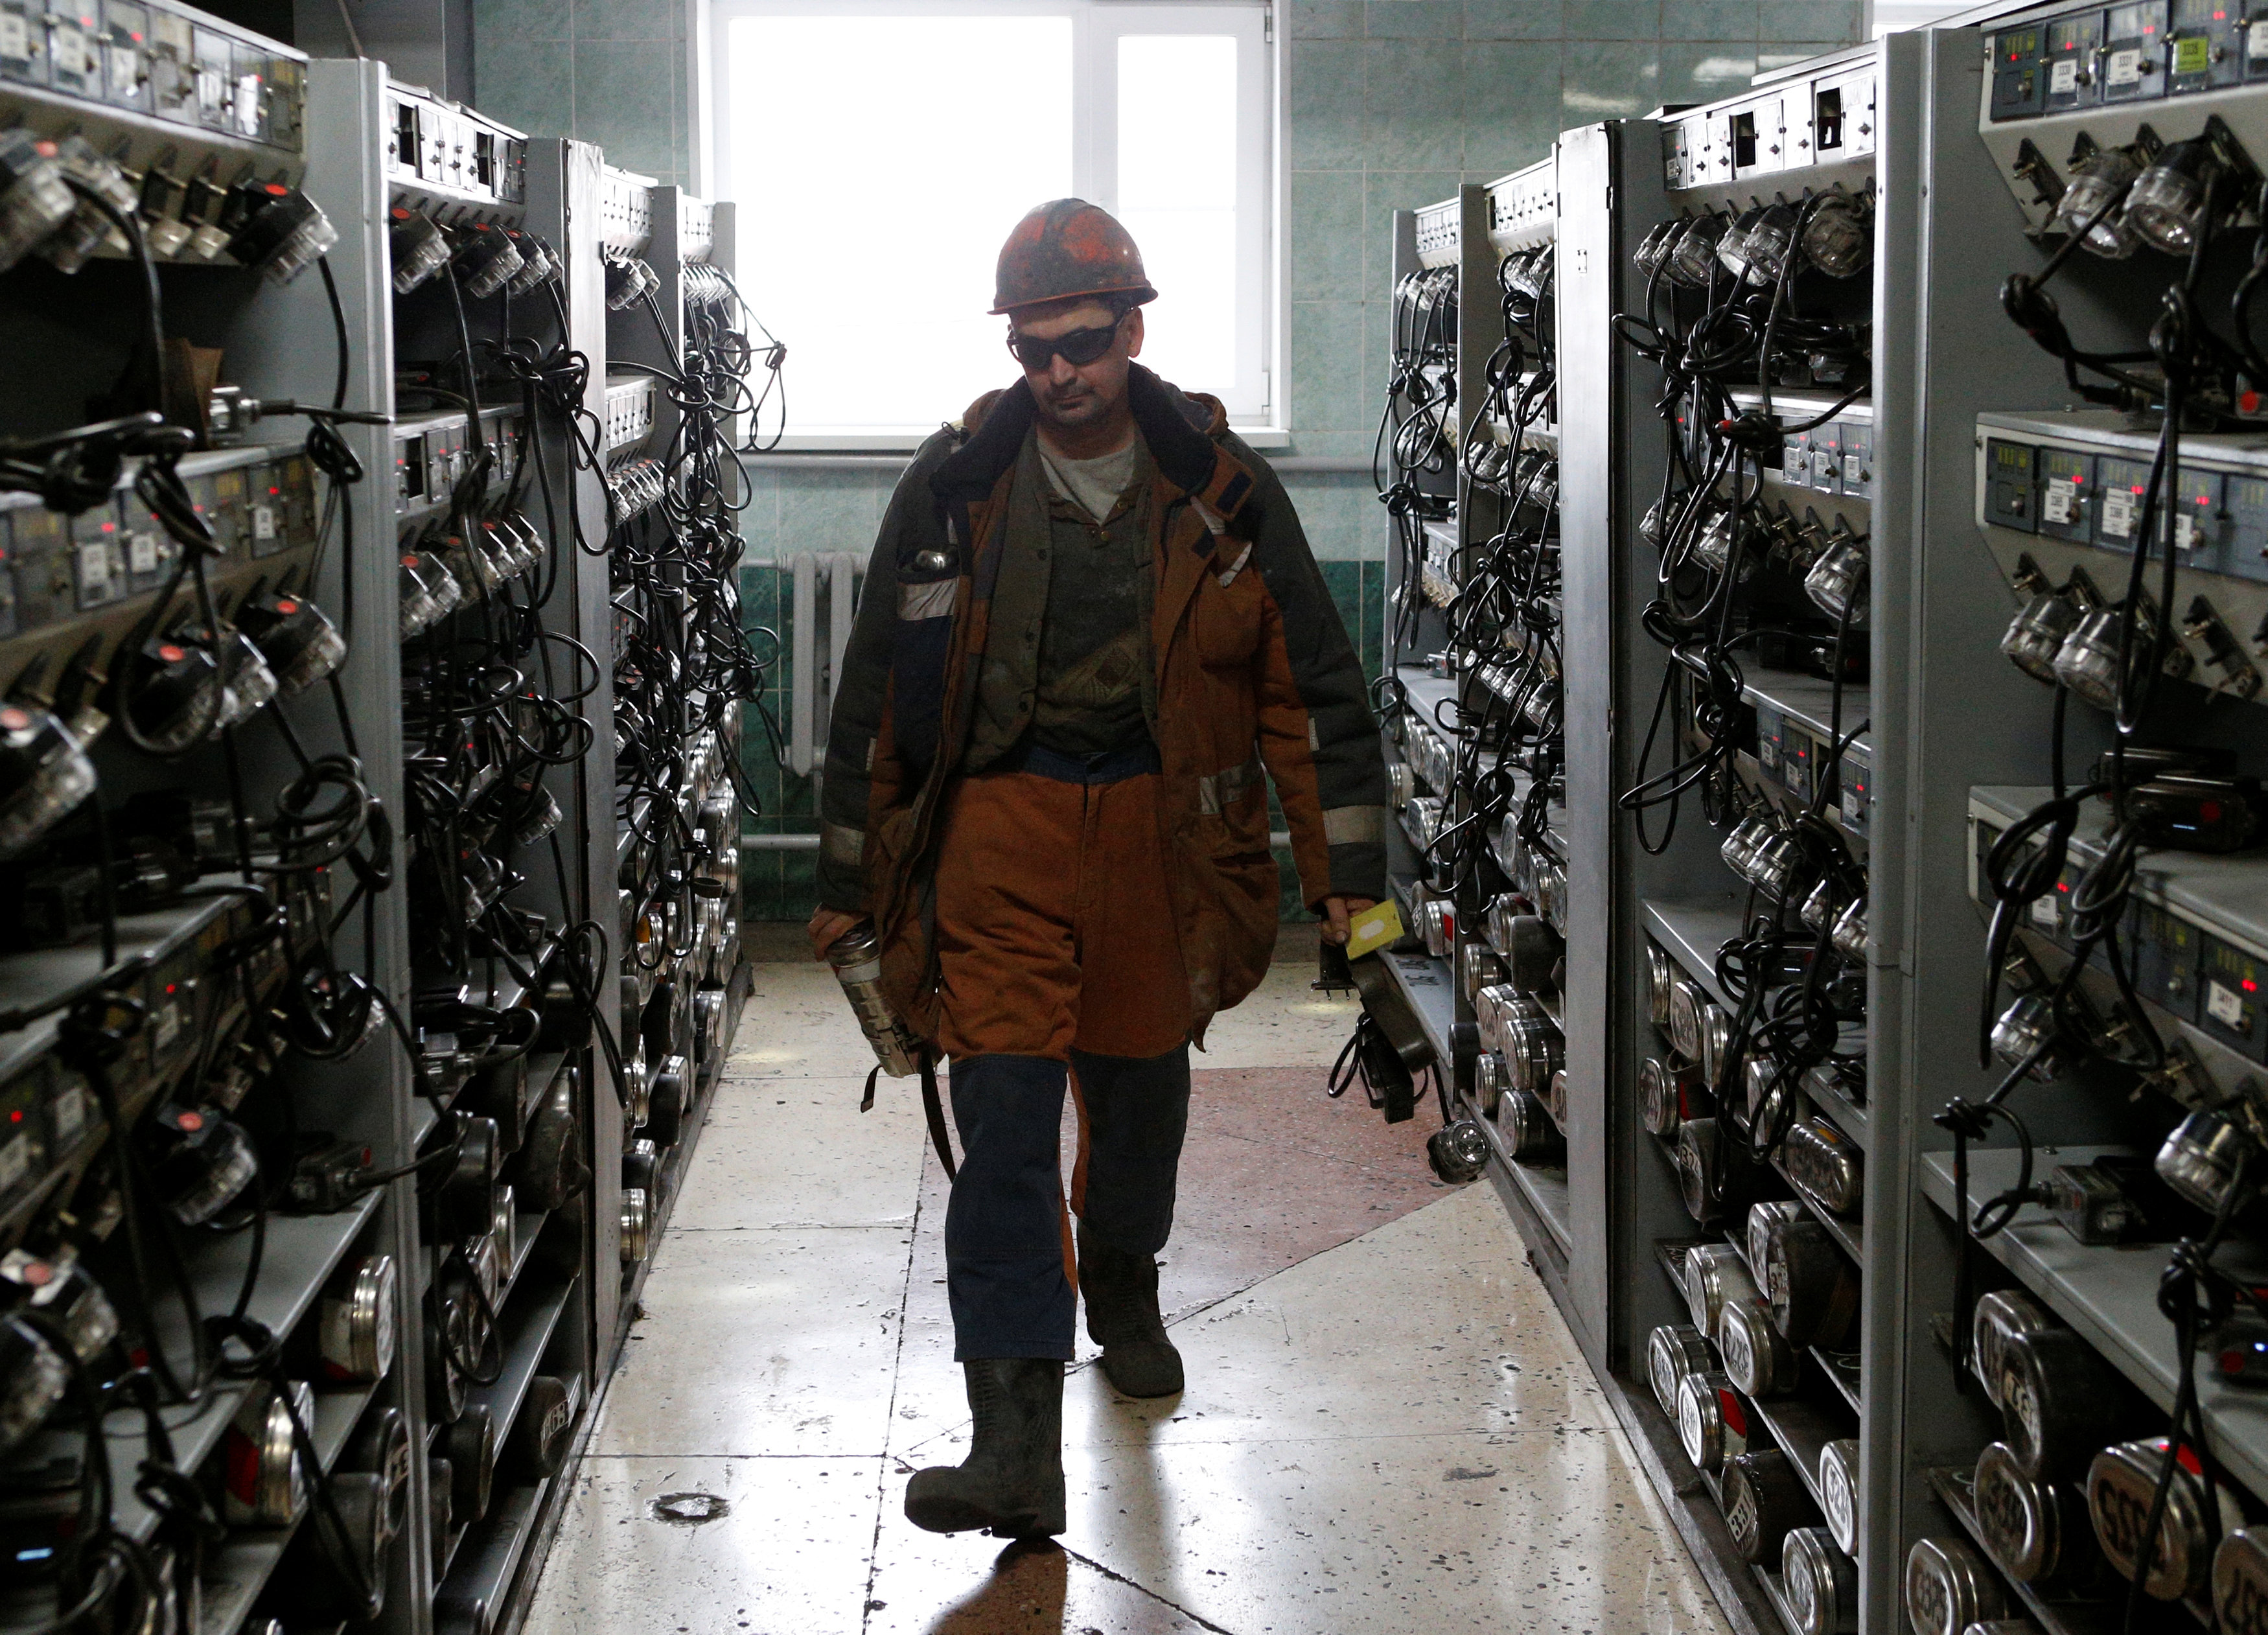 A miner walks past shelves with equipment before descending into the Vorgashorskaya mine near the far northern city of Vorkuta